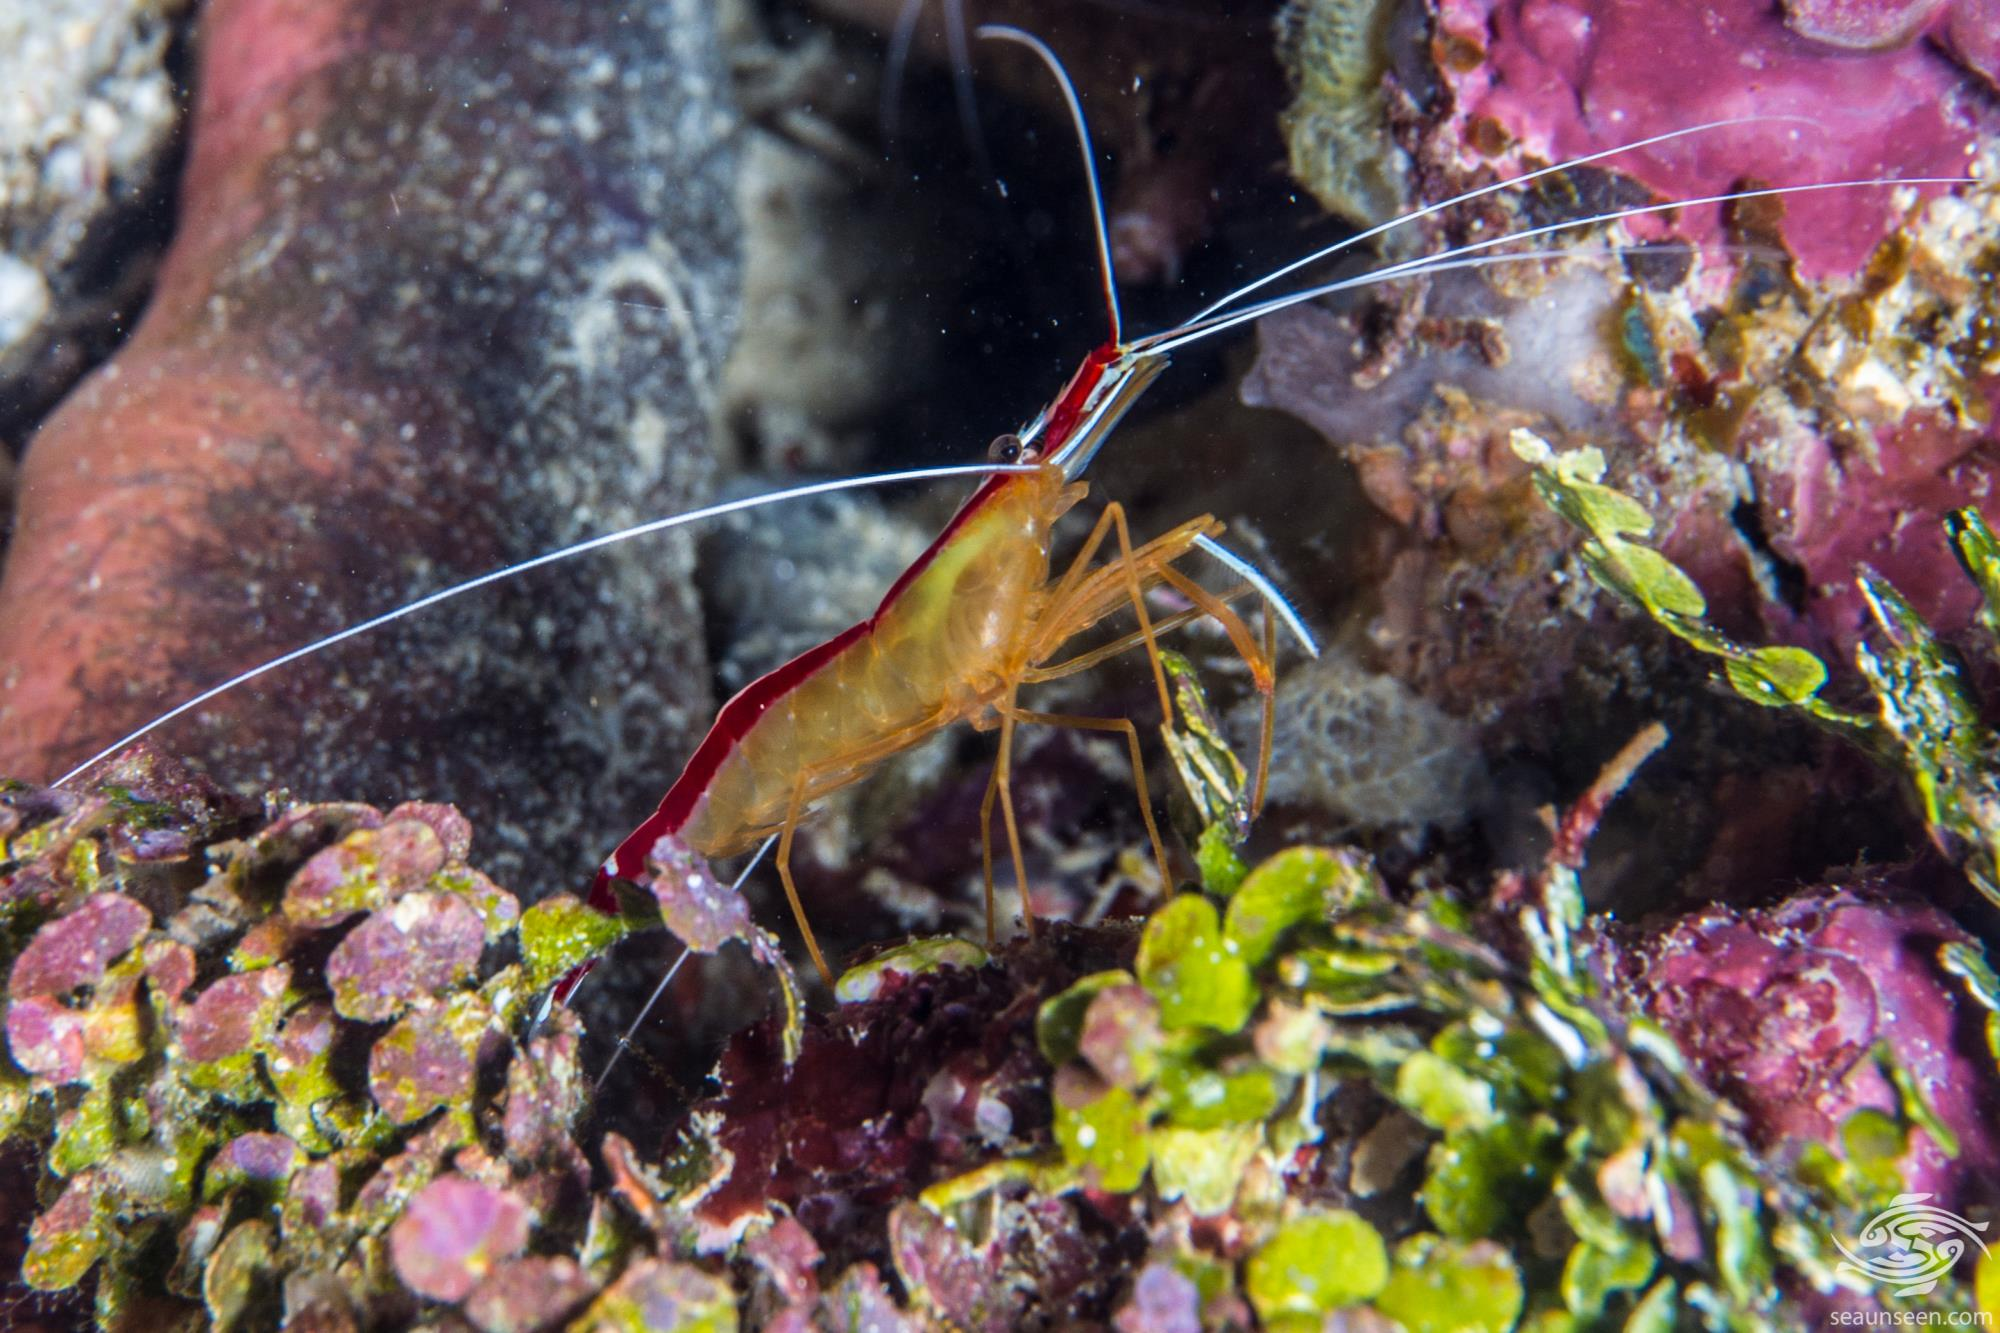 Pacific Cleaner Shrimp (Lysmata amboinensis) is also known as the Ambon Cleaner Shrimp, the Scarlet Cleaner Shrimp and as the Cleaner Shrimp.